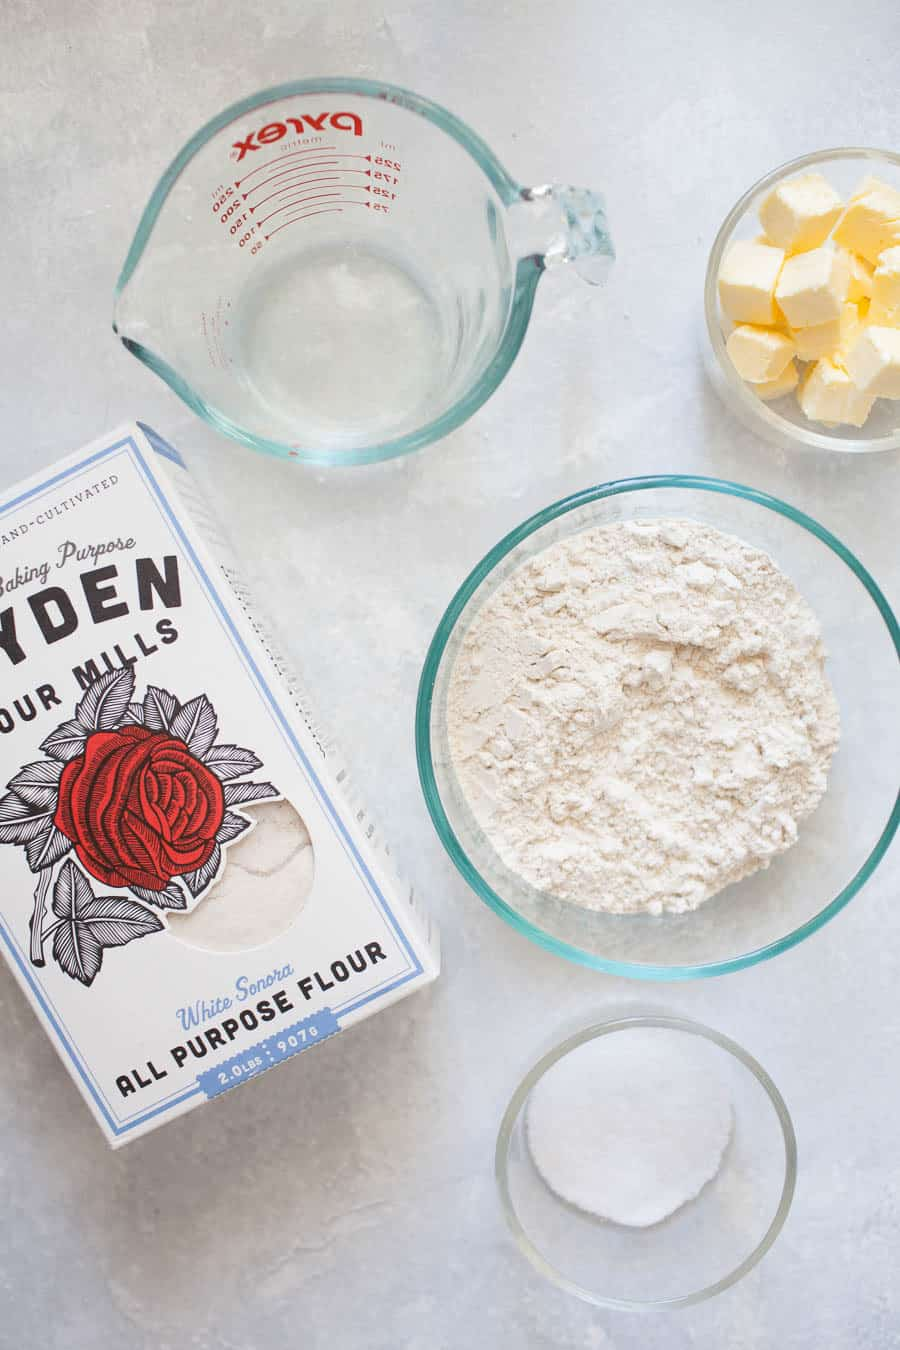 The holidays are right around the corner, which means it's time to plan those holiday pies! There's no better way than learning to make your own homemade holiday pie crust. With the right technique and ingredients, making pie crust from scratch can be done!